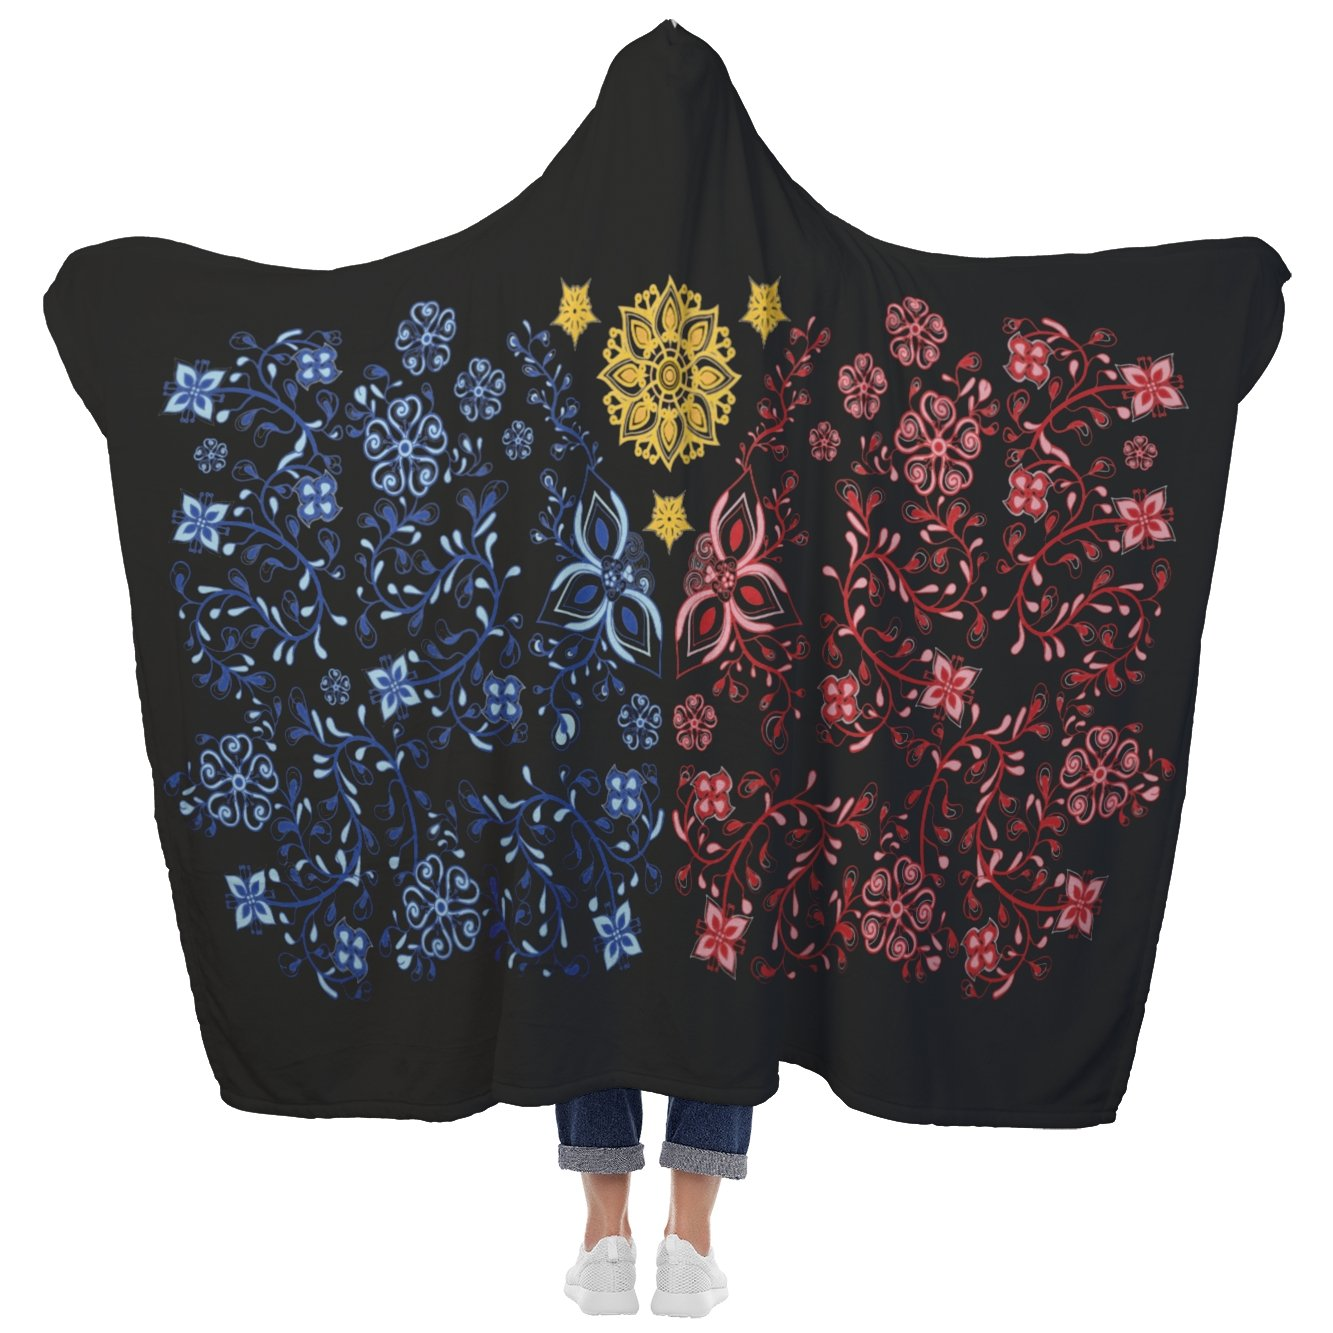 La Pinay Philippines floral design Black - Hooded Blanket - My E Three